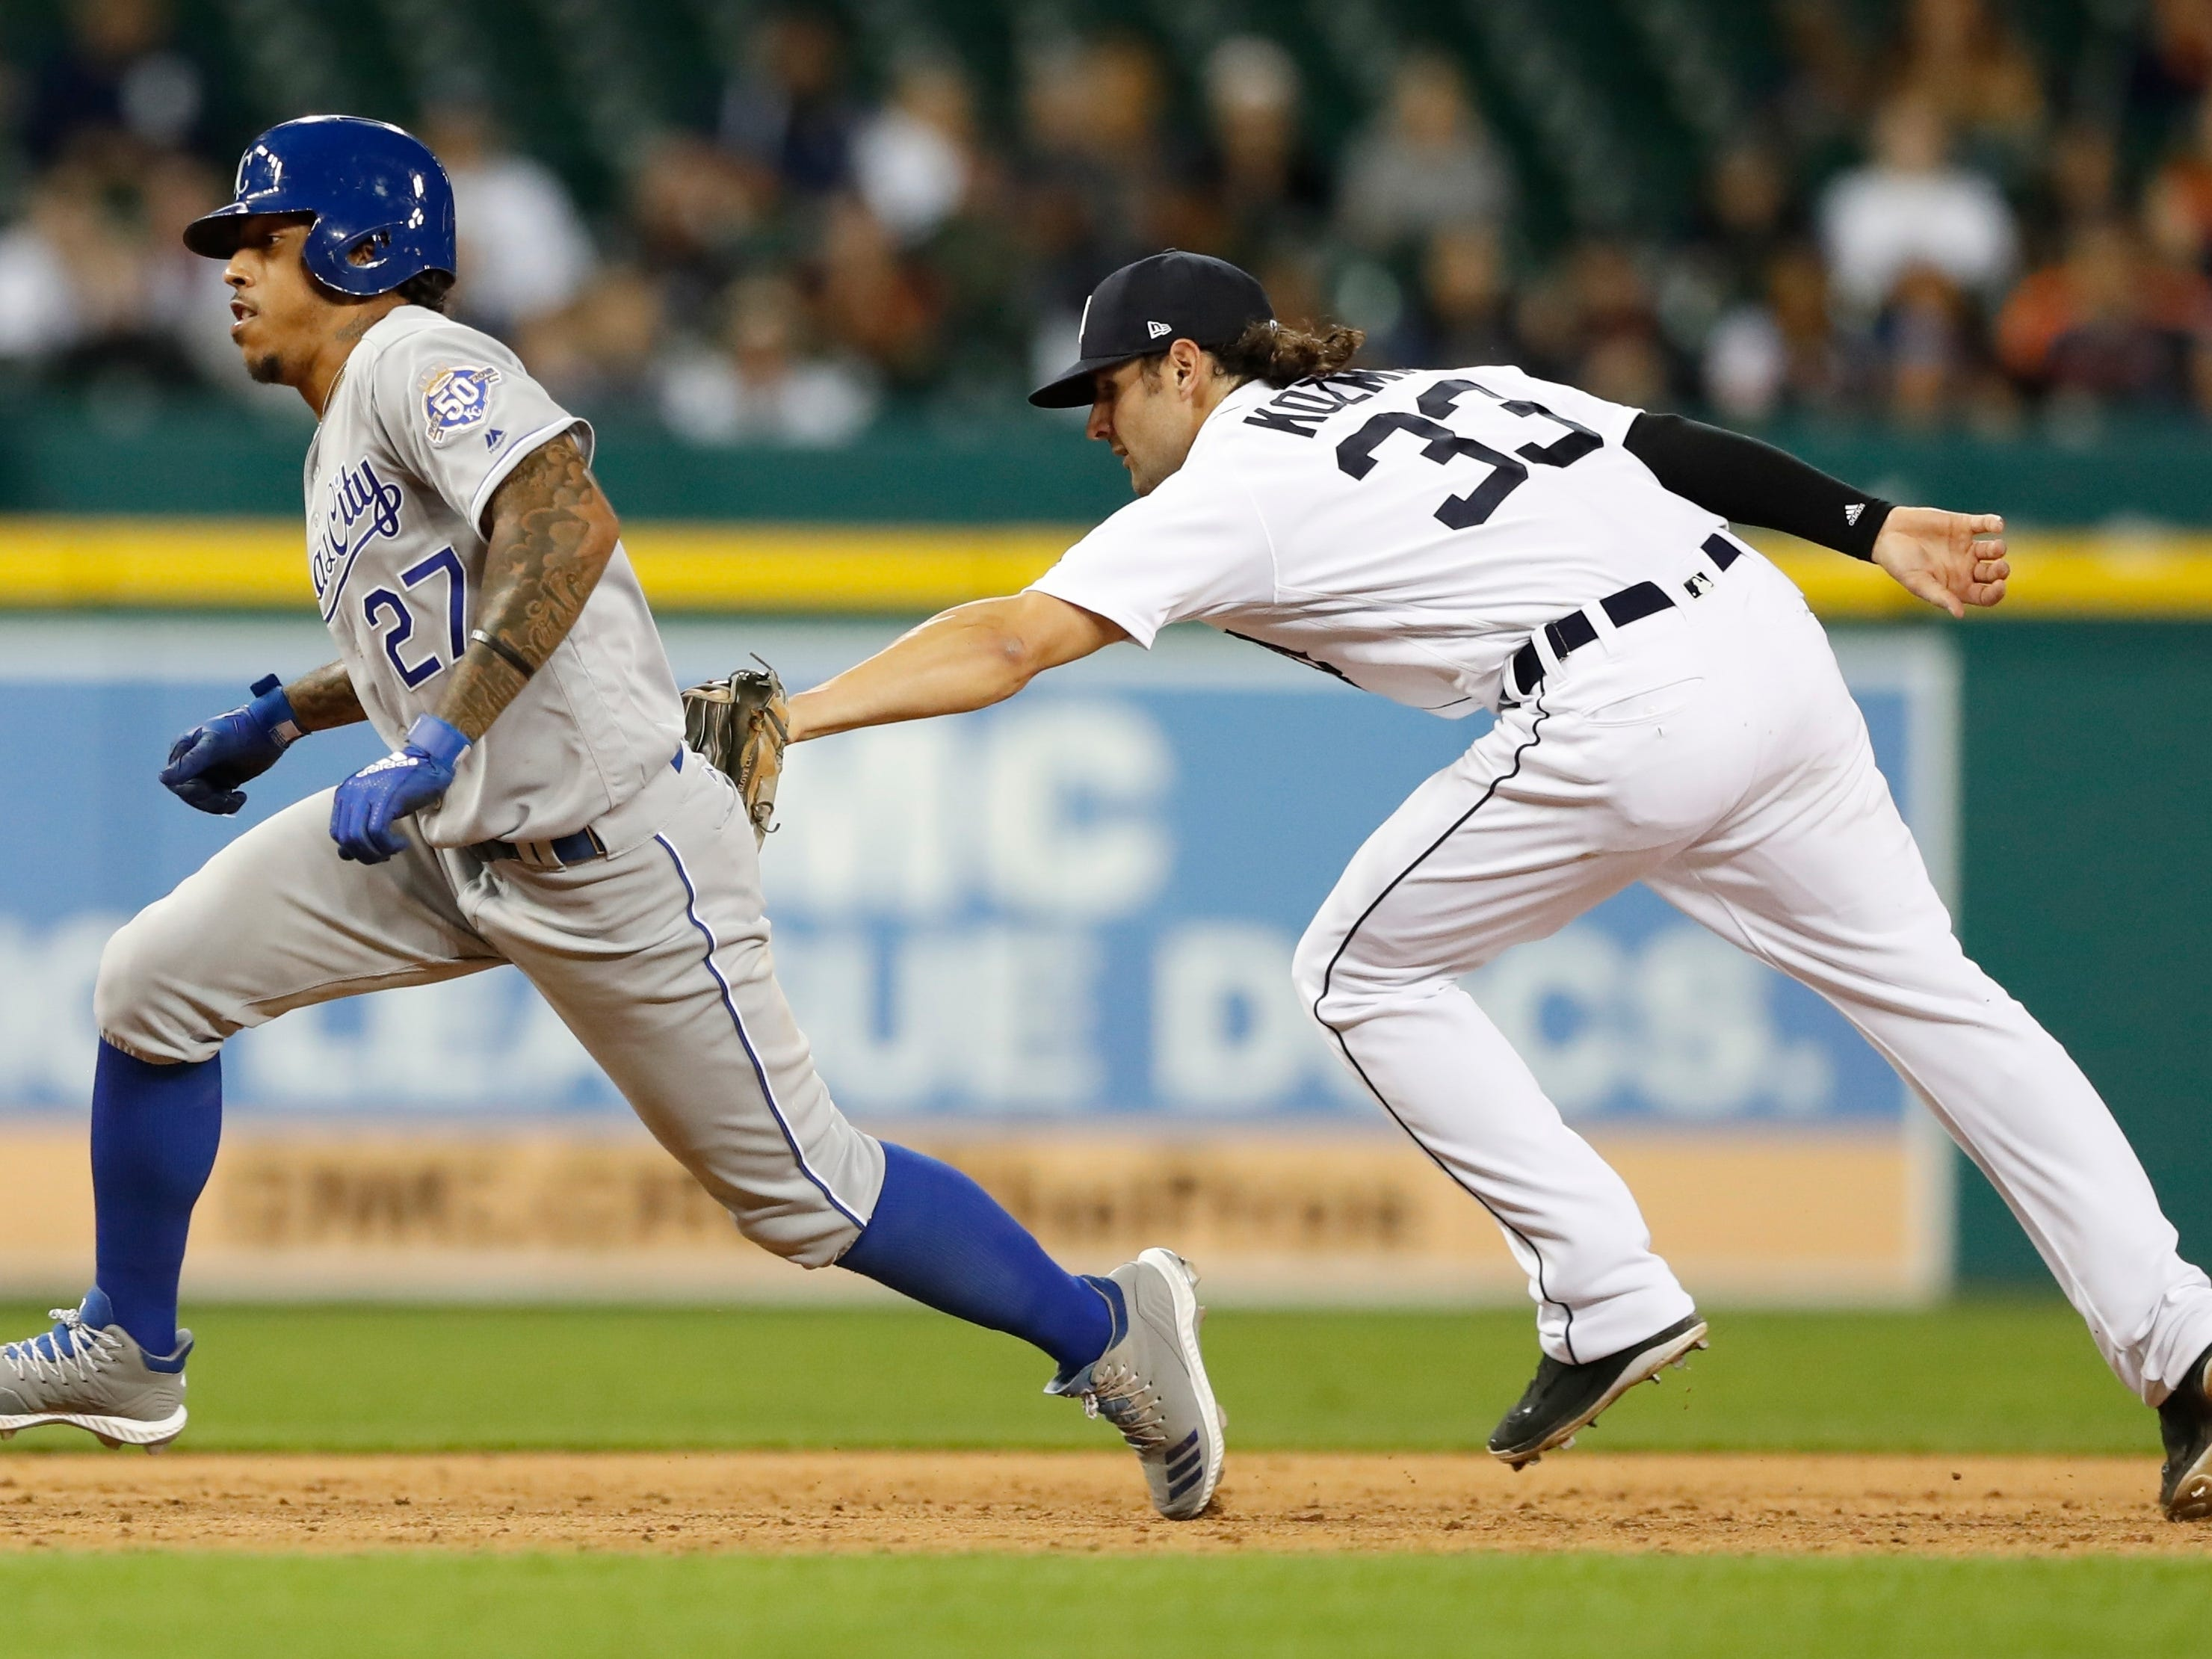 Kansas City Royals' Adalberto Mondesi is caught in a rundown by Detroit Tigers shortstop Pete Kozma during the ninth inning Friday, Sept. 21, 2018, in Detroit.